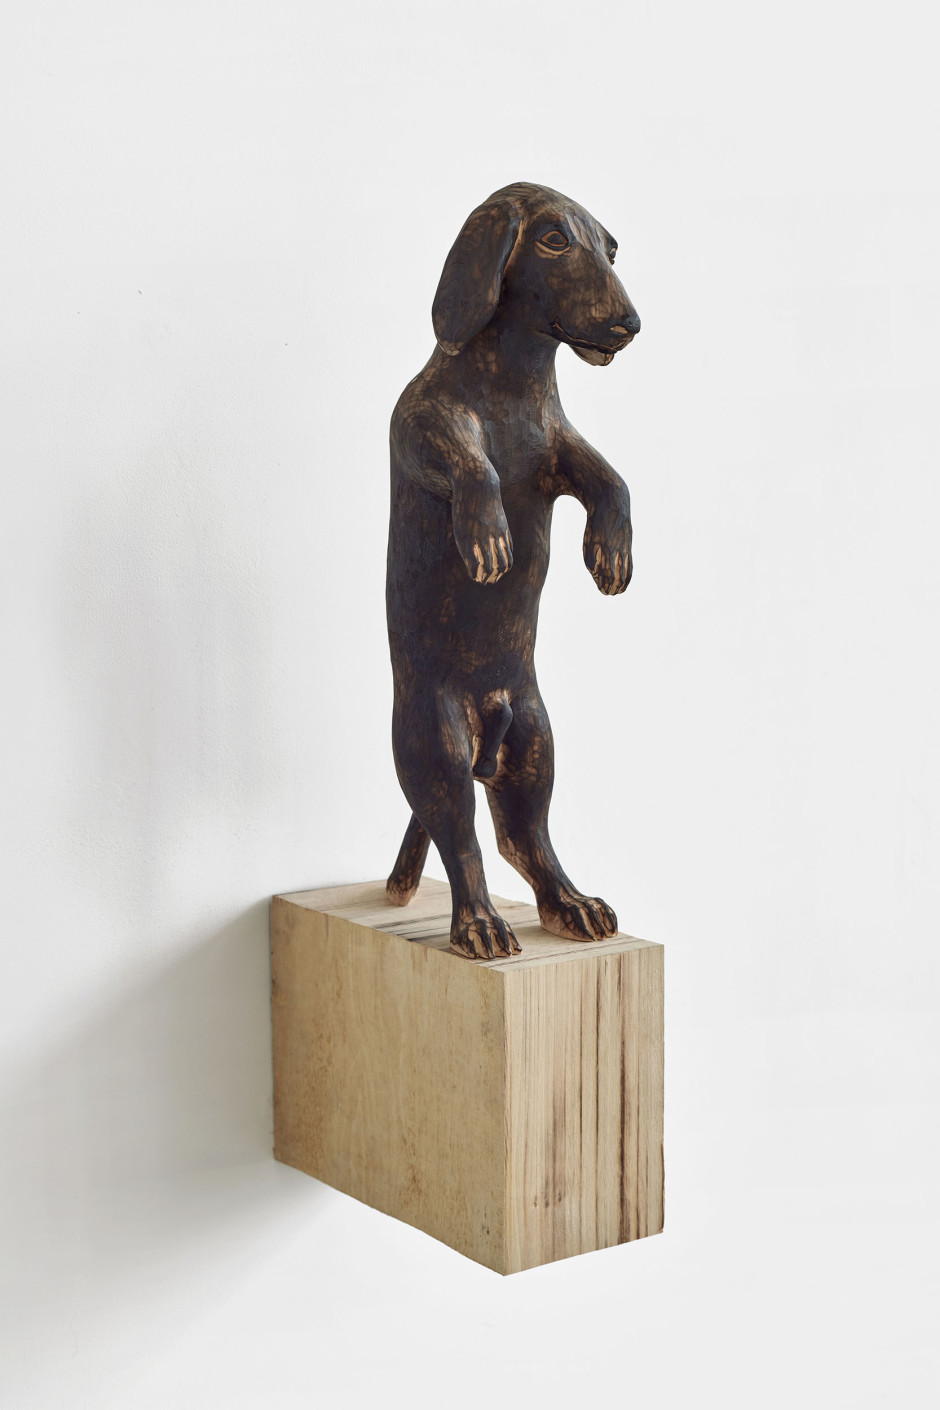 Ponti (dog, standing), 2018  burned lime wood  figure: 52 x 15.5 x 24 cm / 20 ½ x 6 ⅛ x 9 ½ in overall: 74 x 14 x 36.5 cm / 29 ⅛ x 5 ½ x 14 ⅜ in